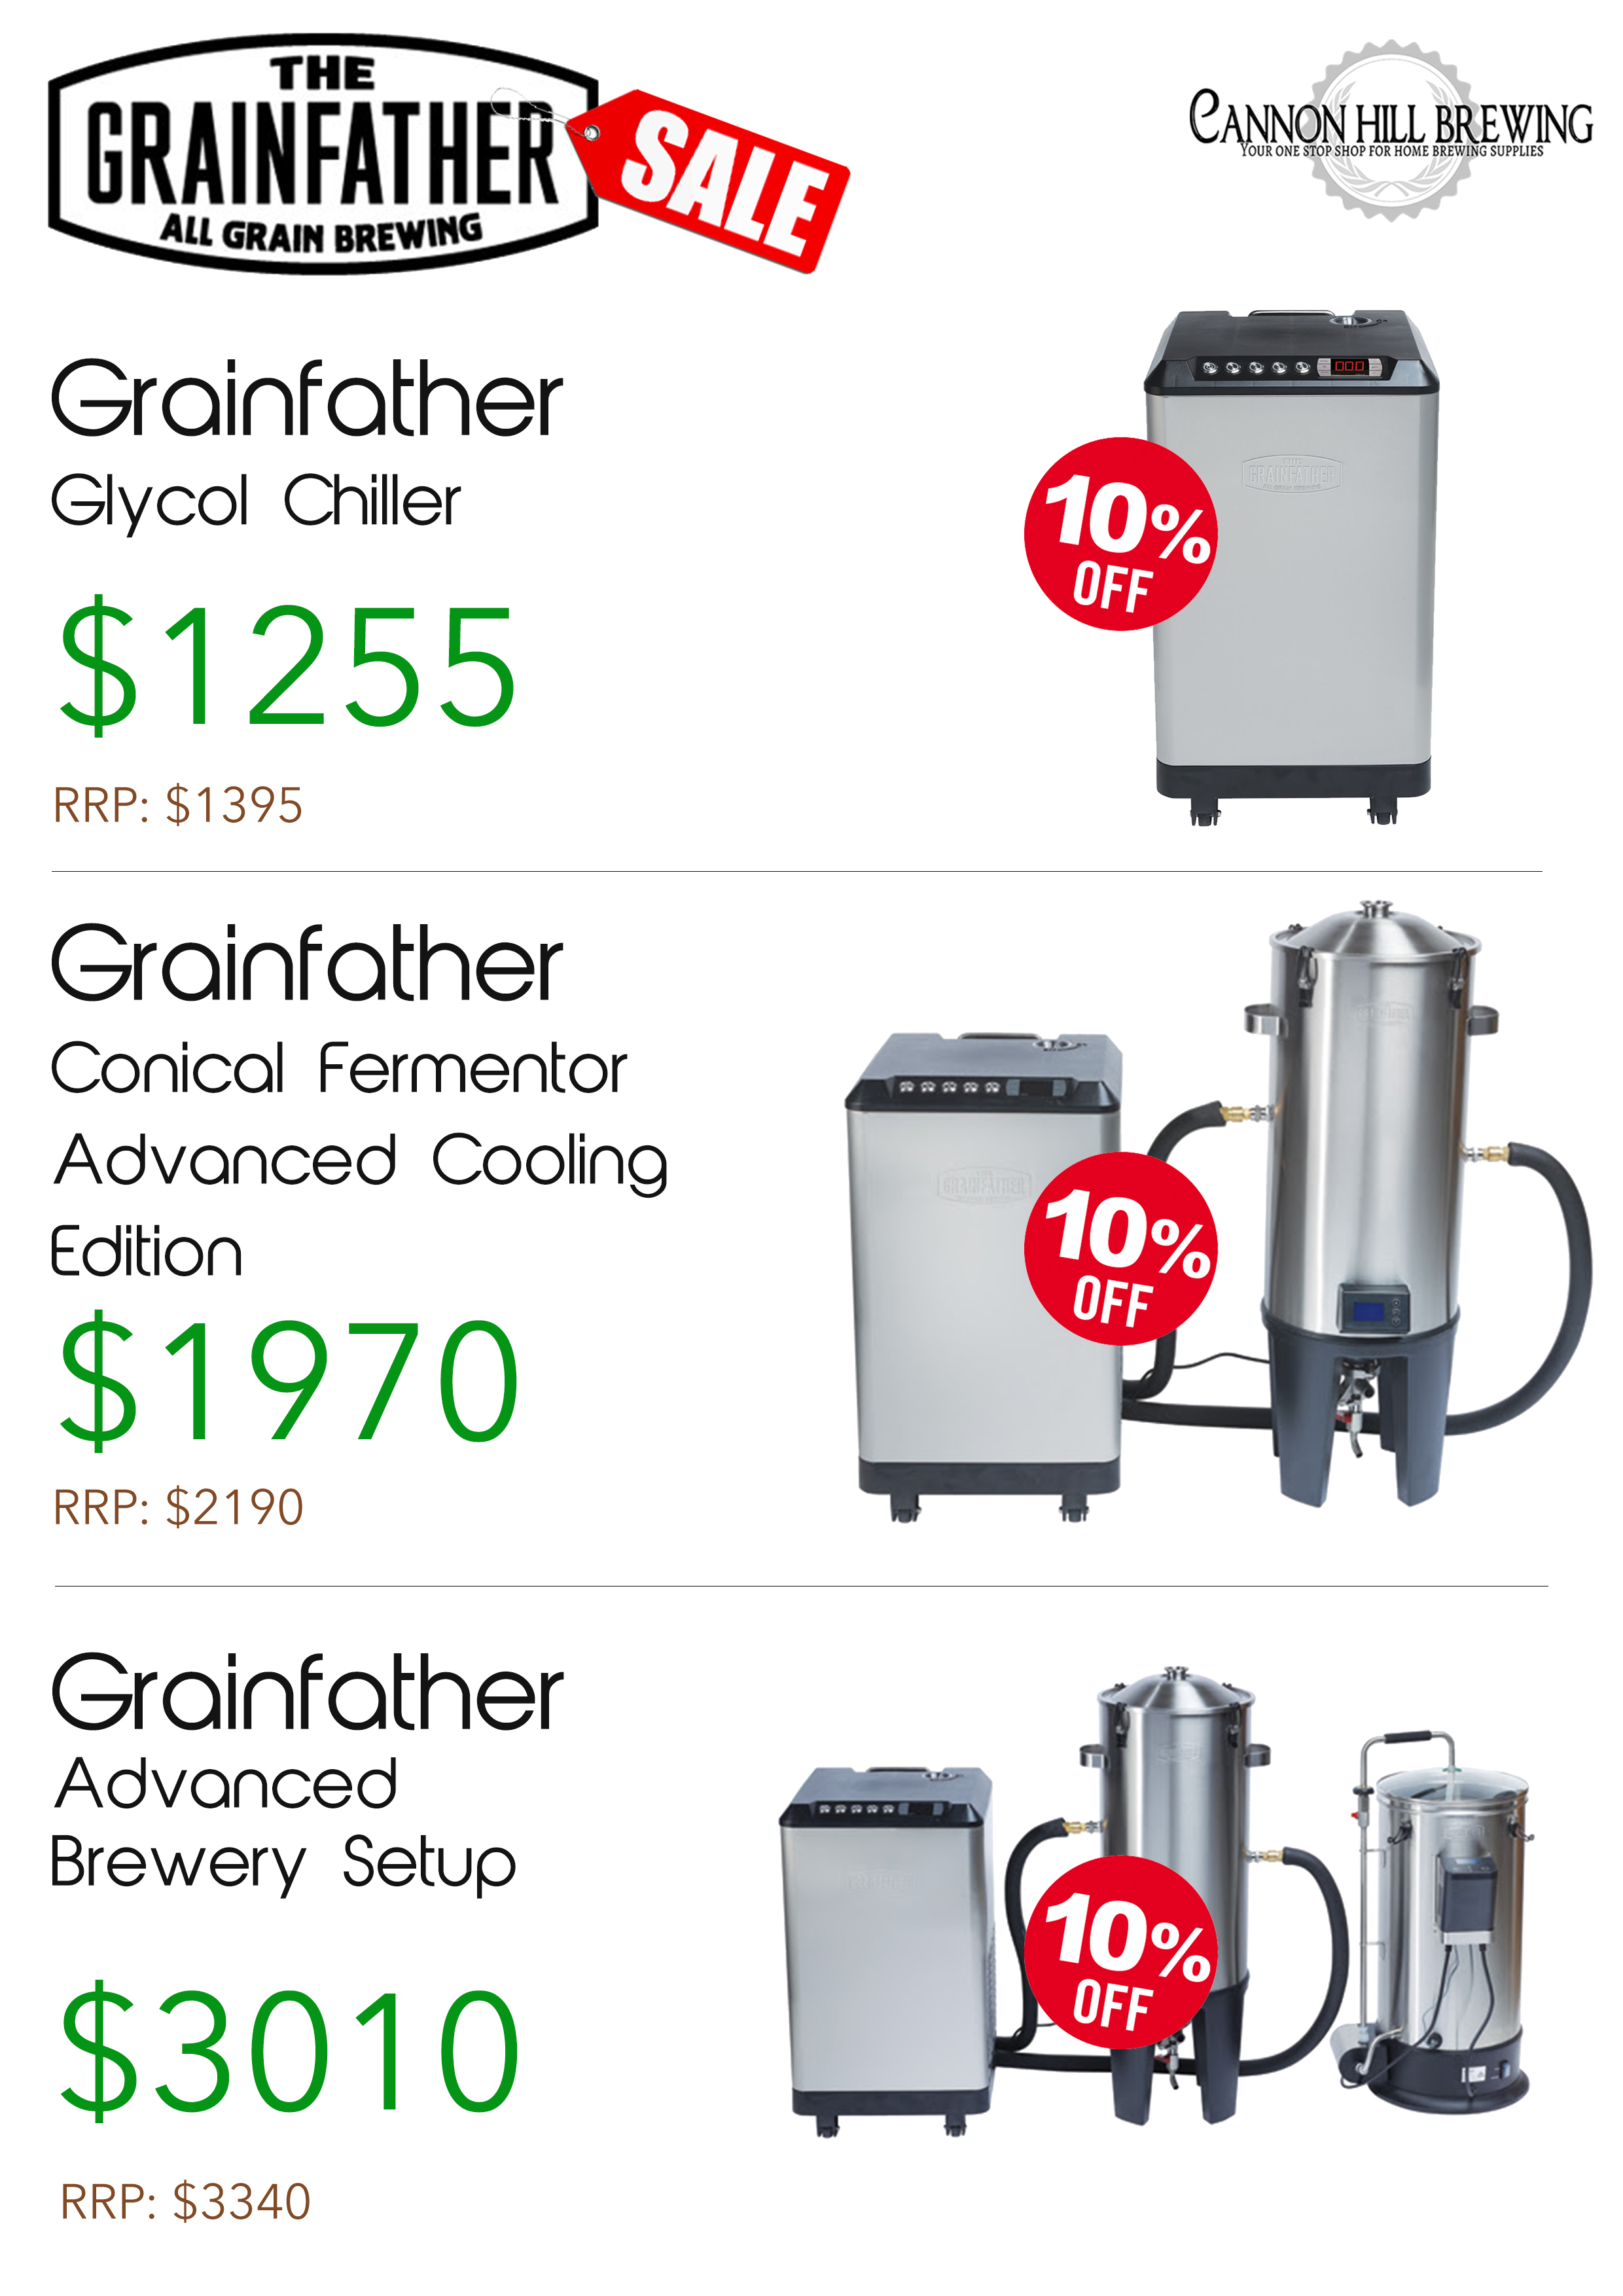 grainfather brewery setup specials